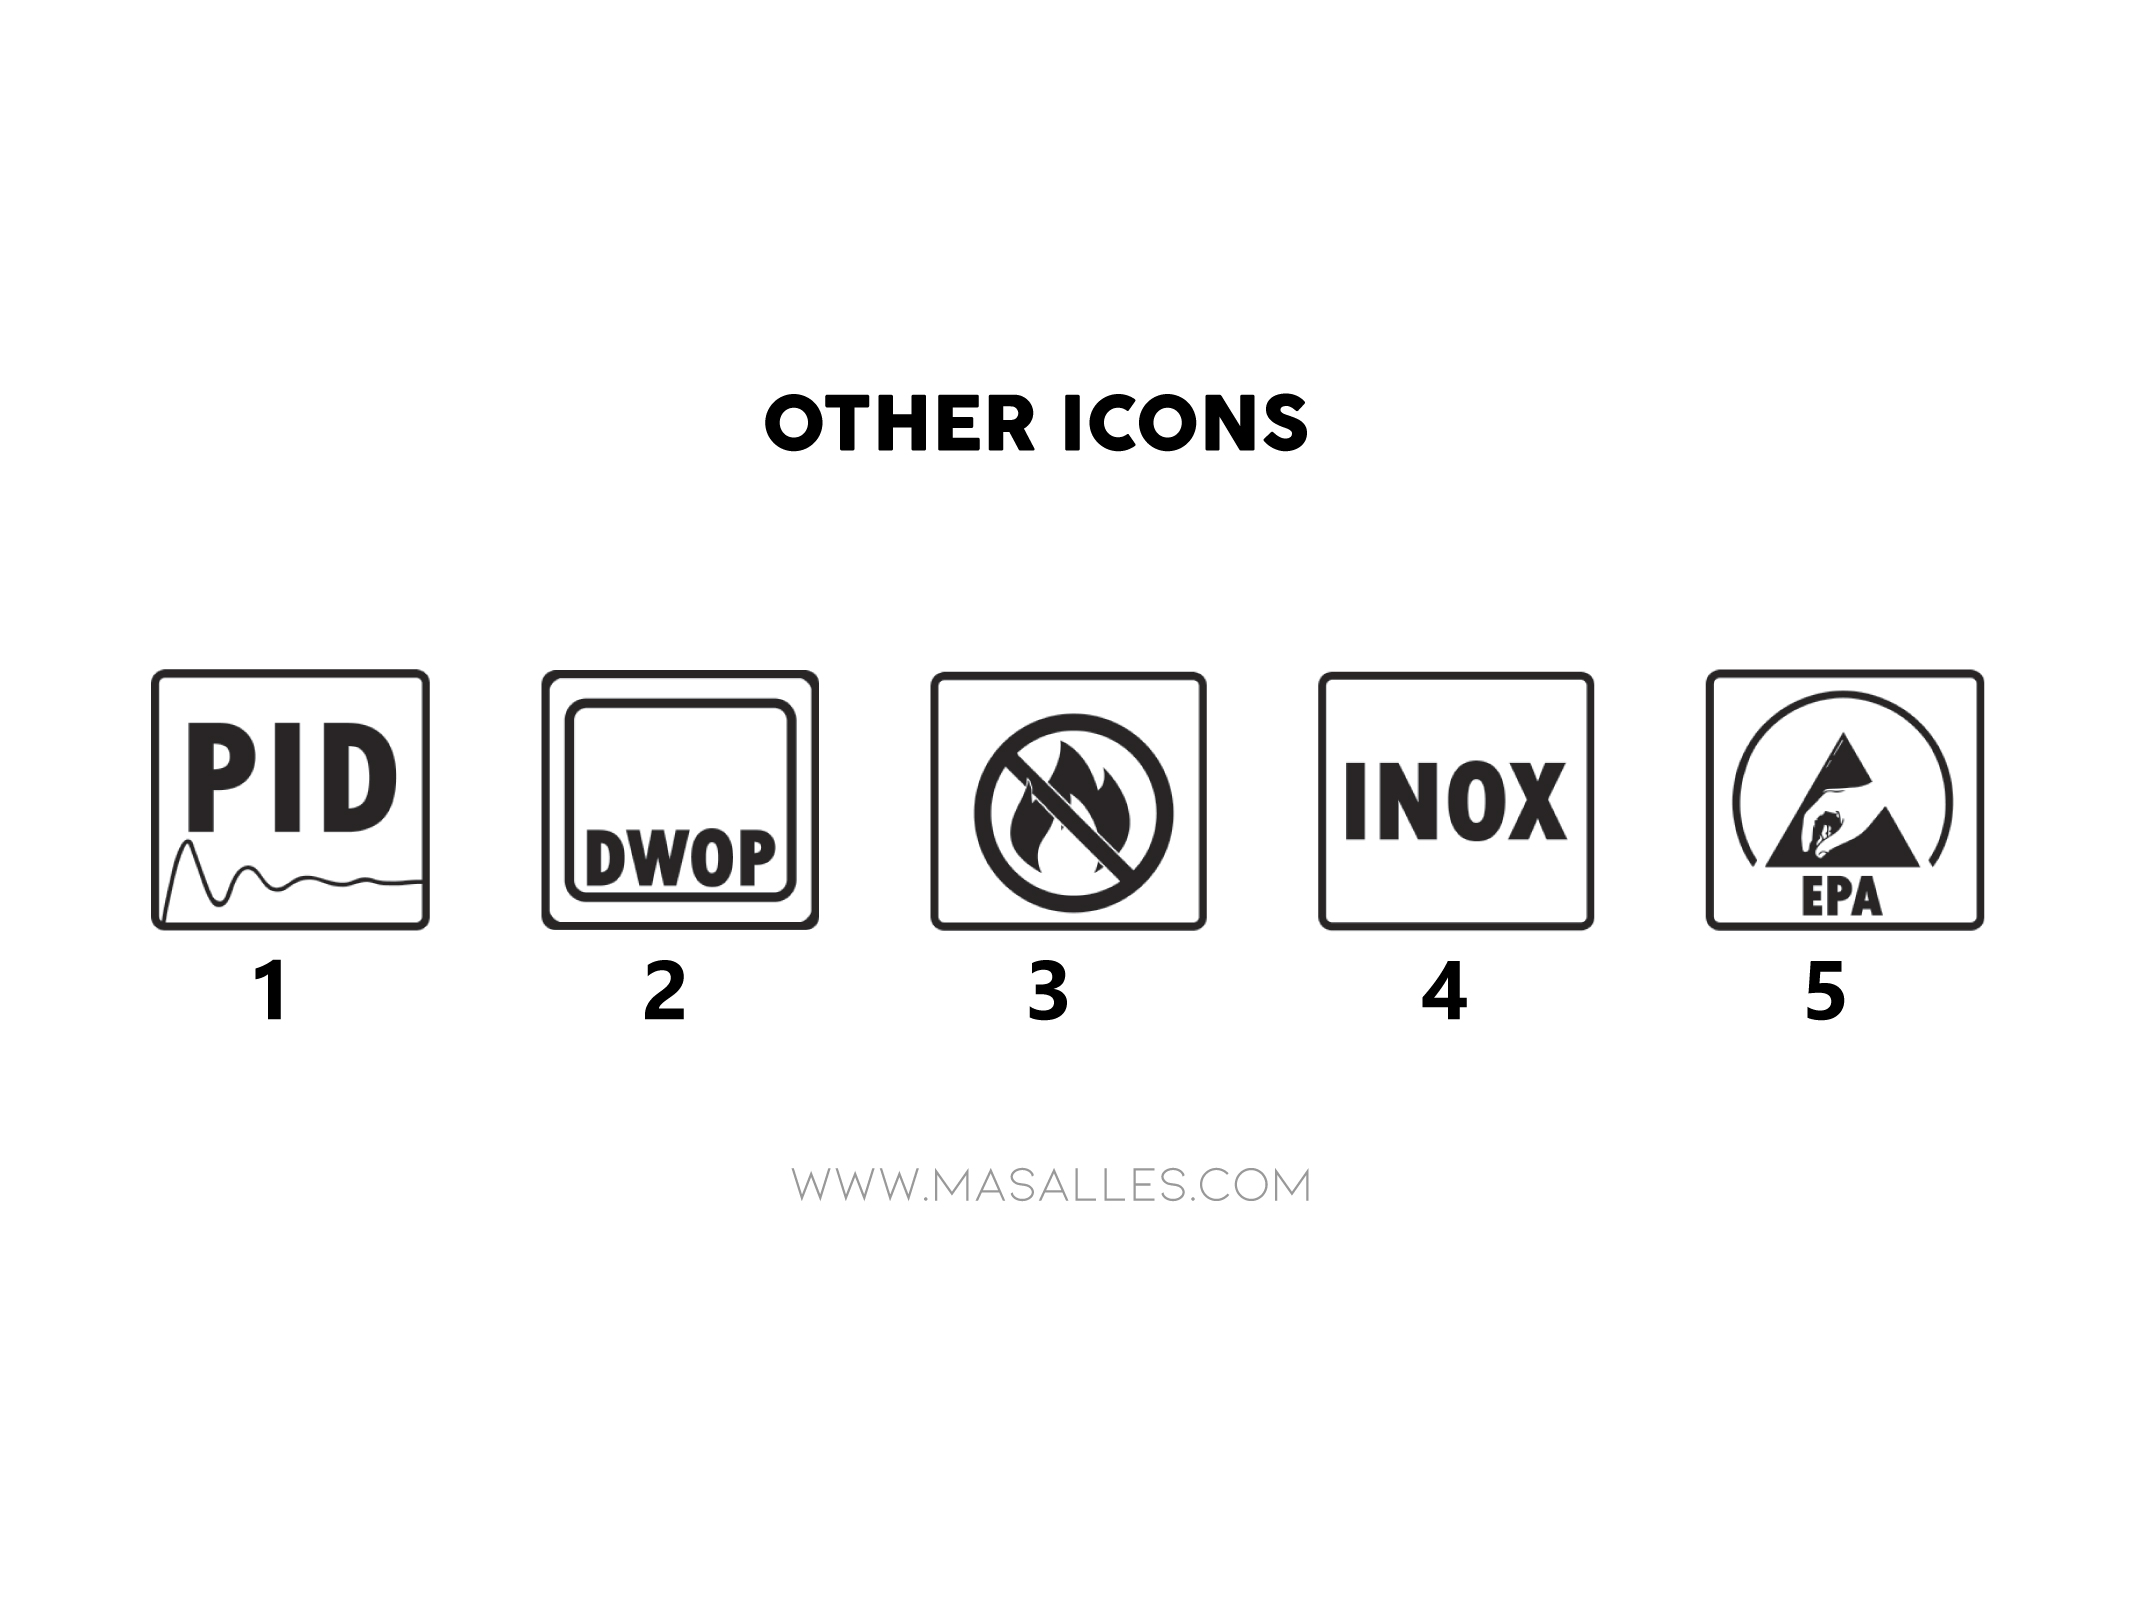 masalles falcon icono explicacion others icons english 01